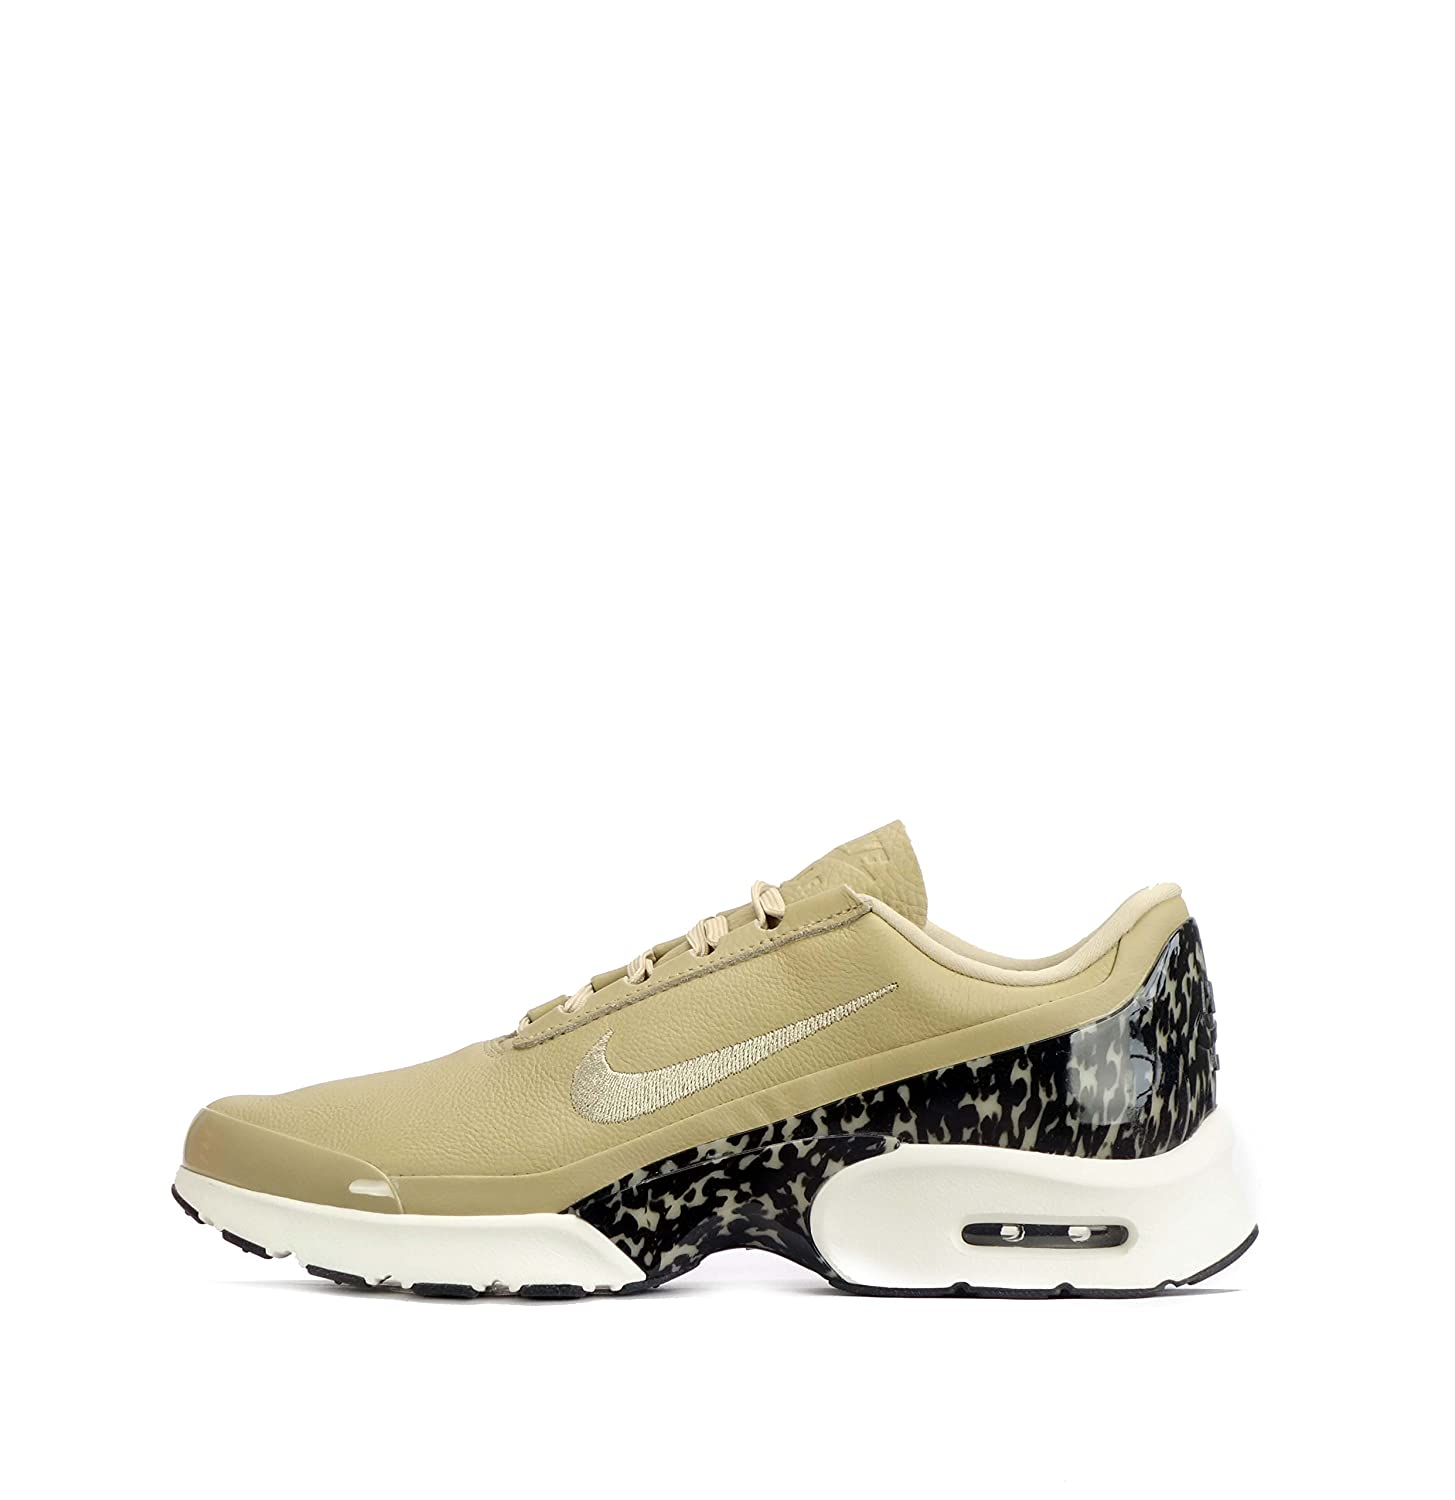 huge selection of 573ca 732ce Nike Air Max Jewell LX Women s Trainer (7 UK   41 EU   8 US)  Amazon.co.uk   Shoes   Bags